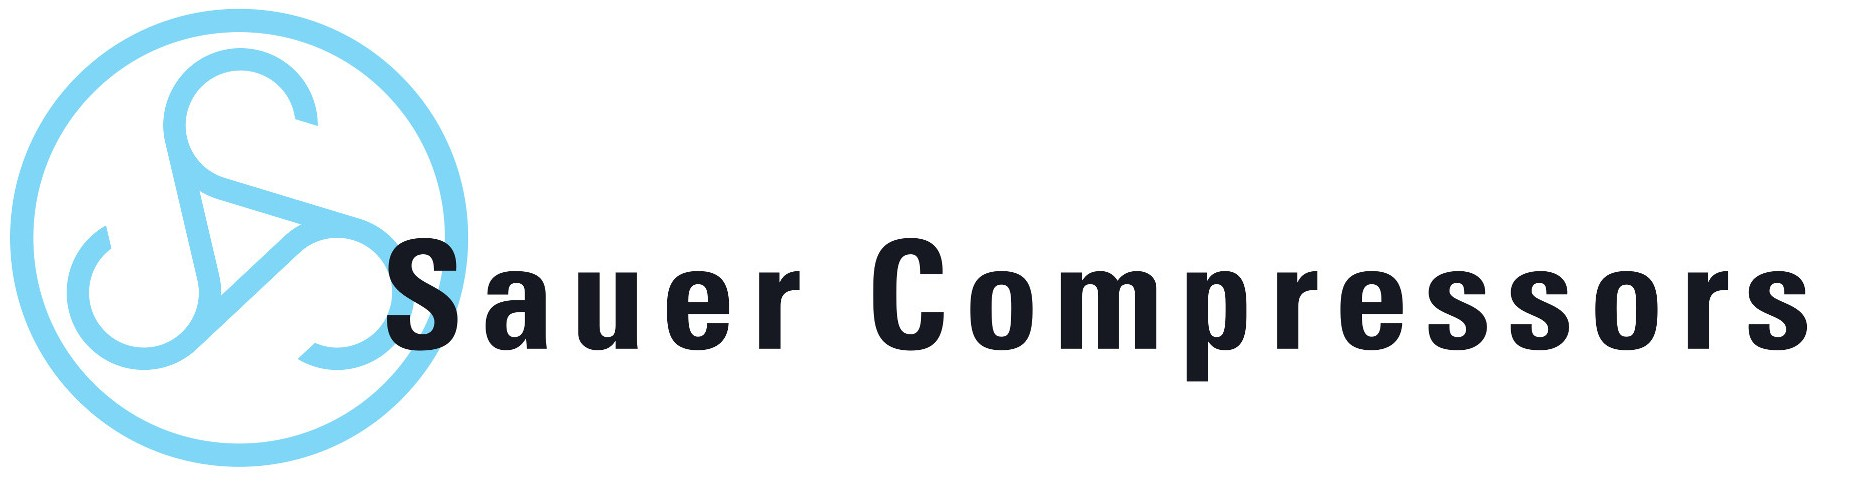 sauer_compressors_logo_medium_2000x